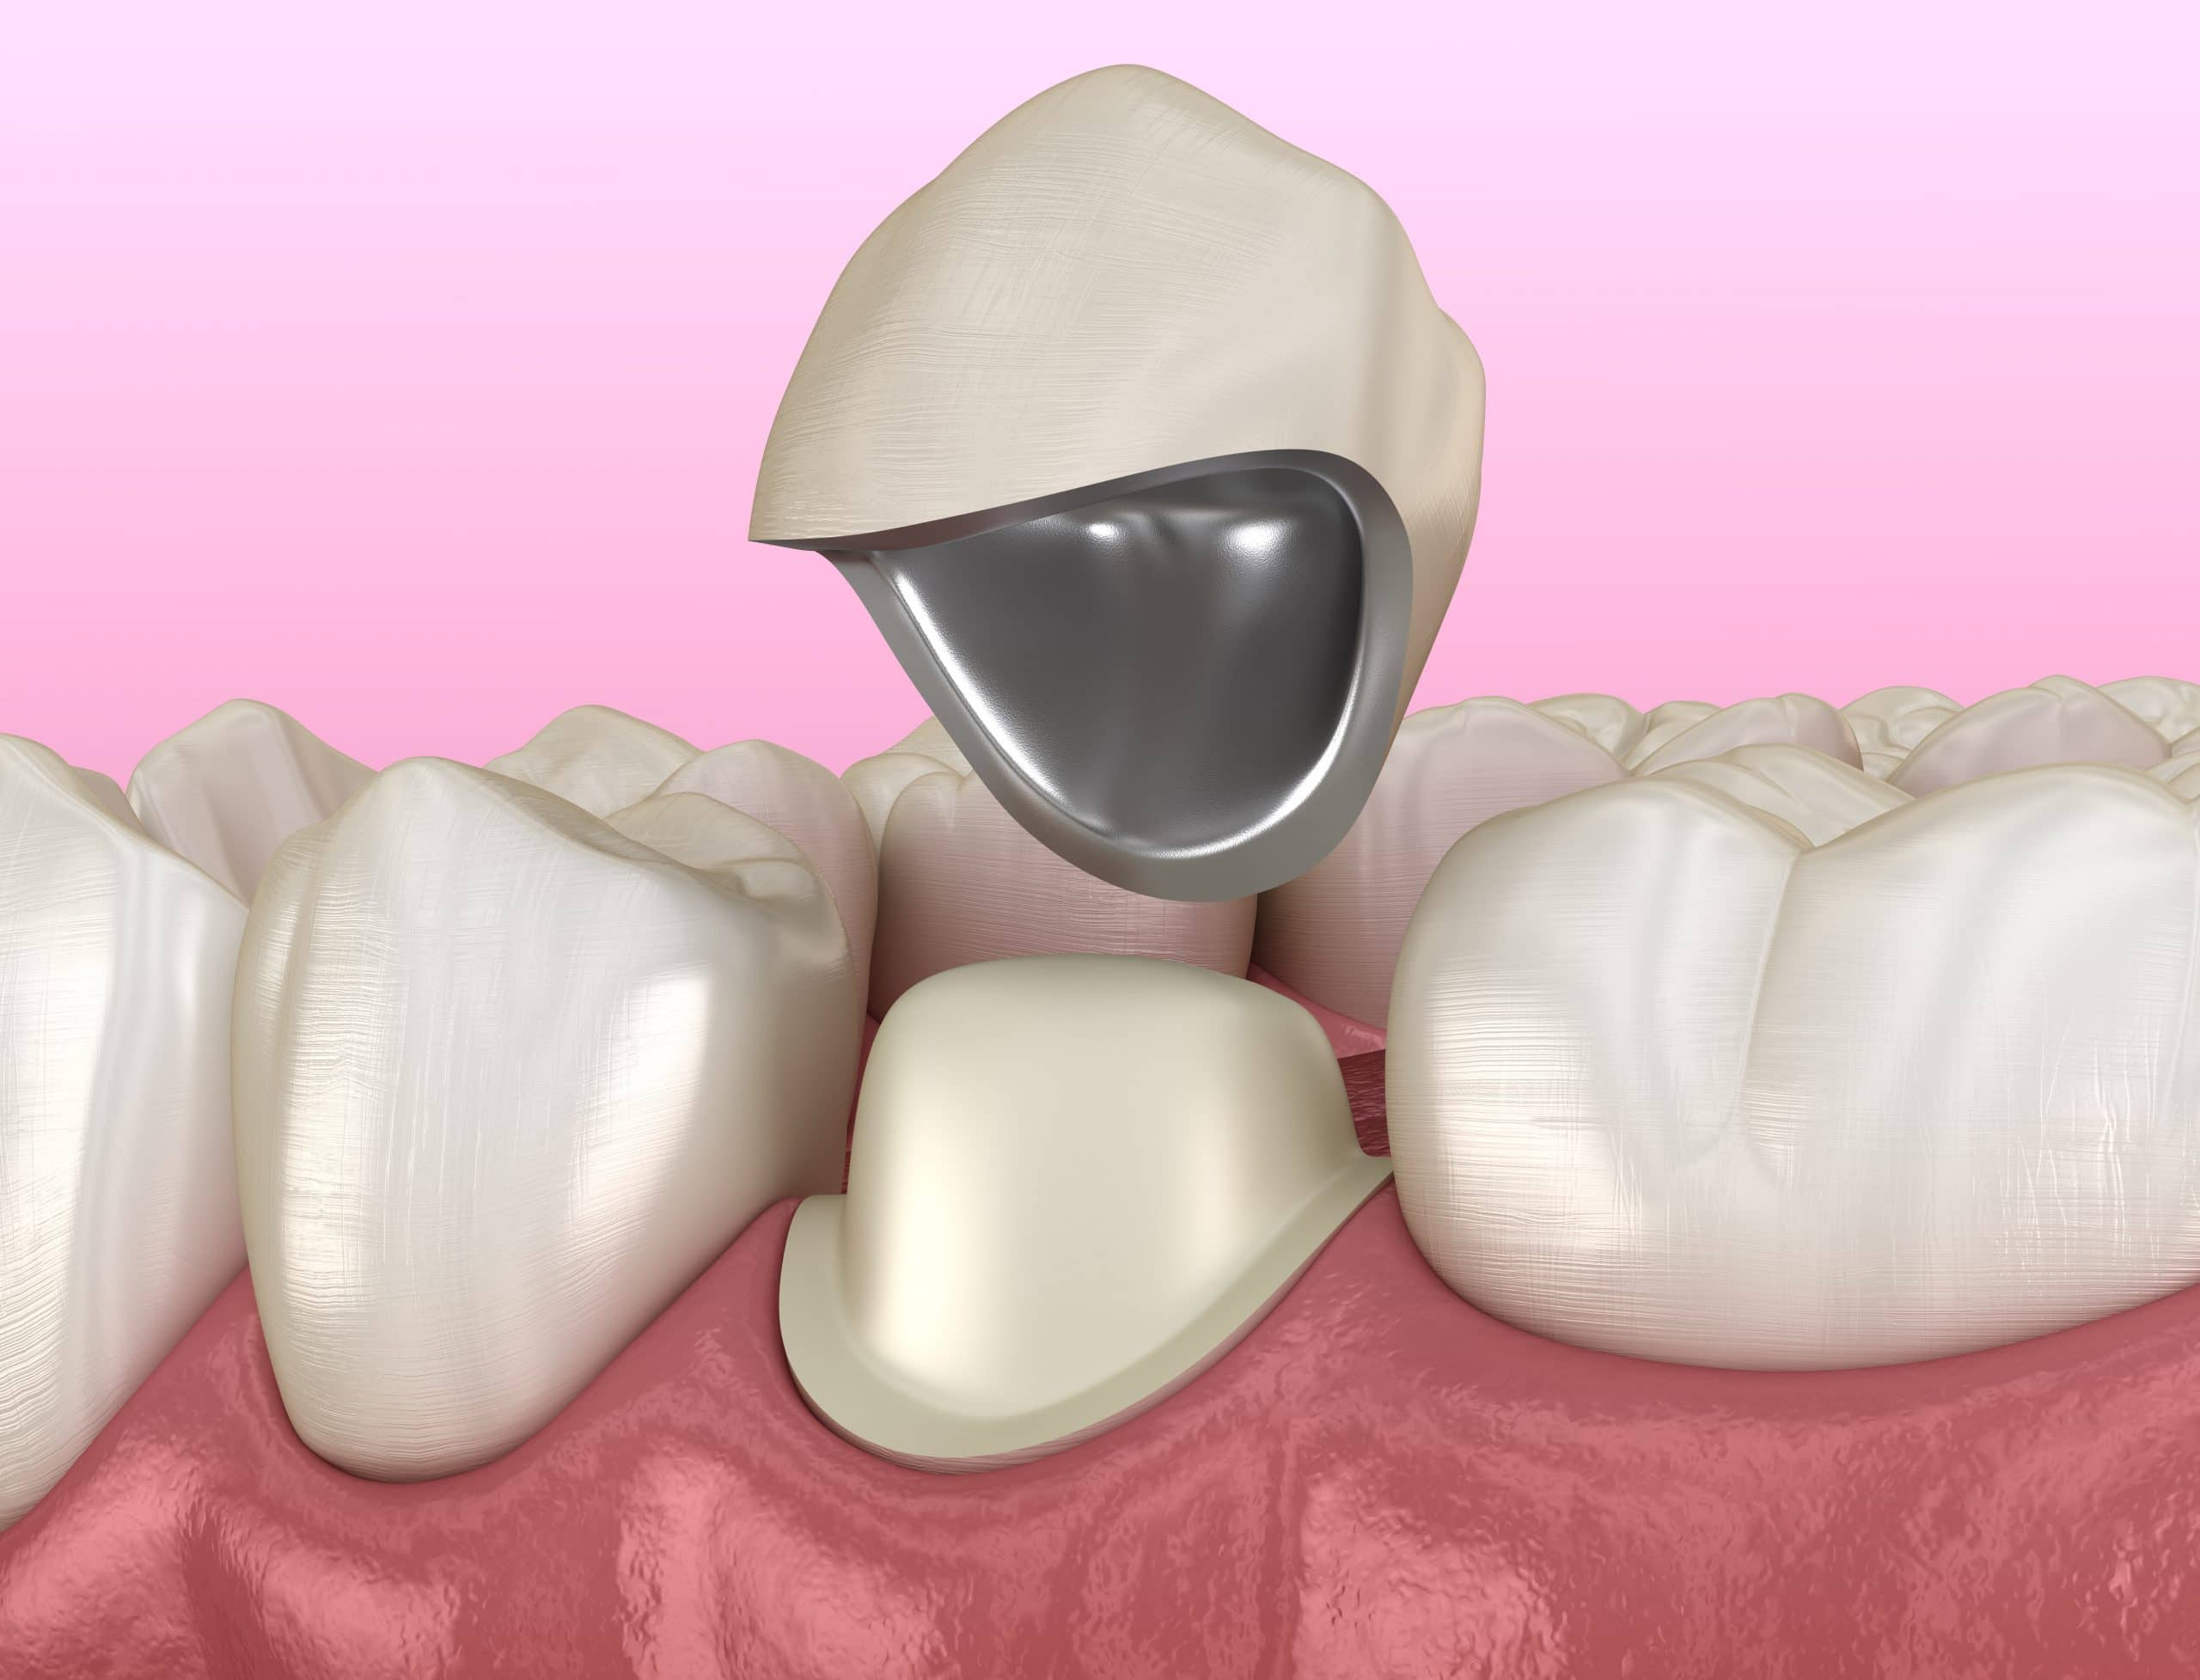 Preparated premolar tooth and dental metal-ceramic crown. Medically accurate 3D illustration